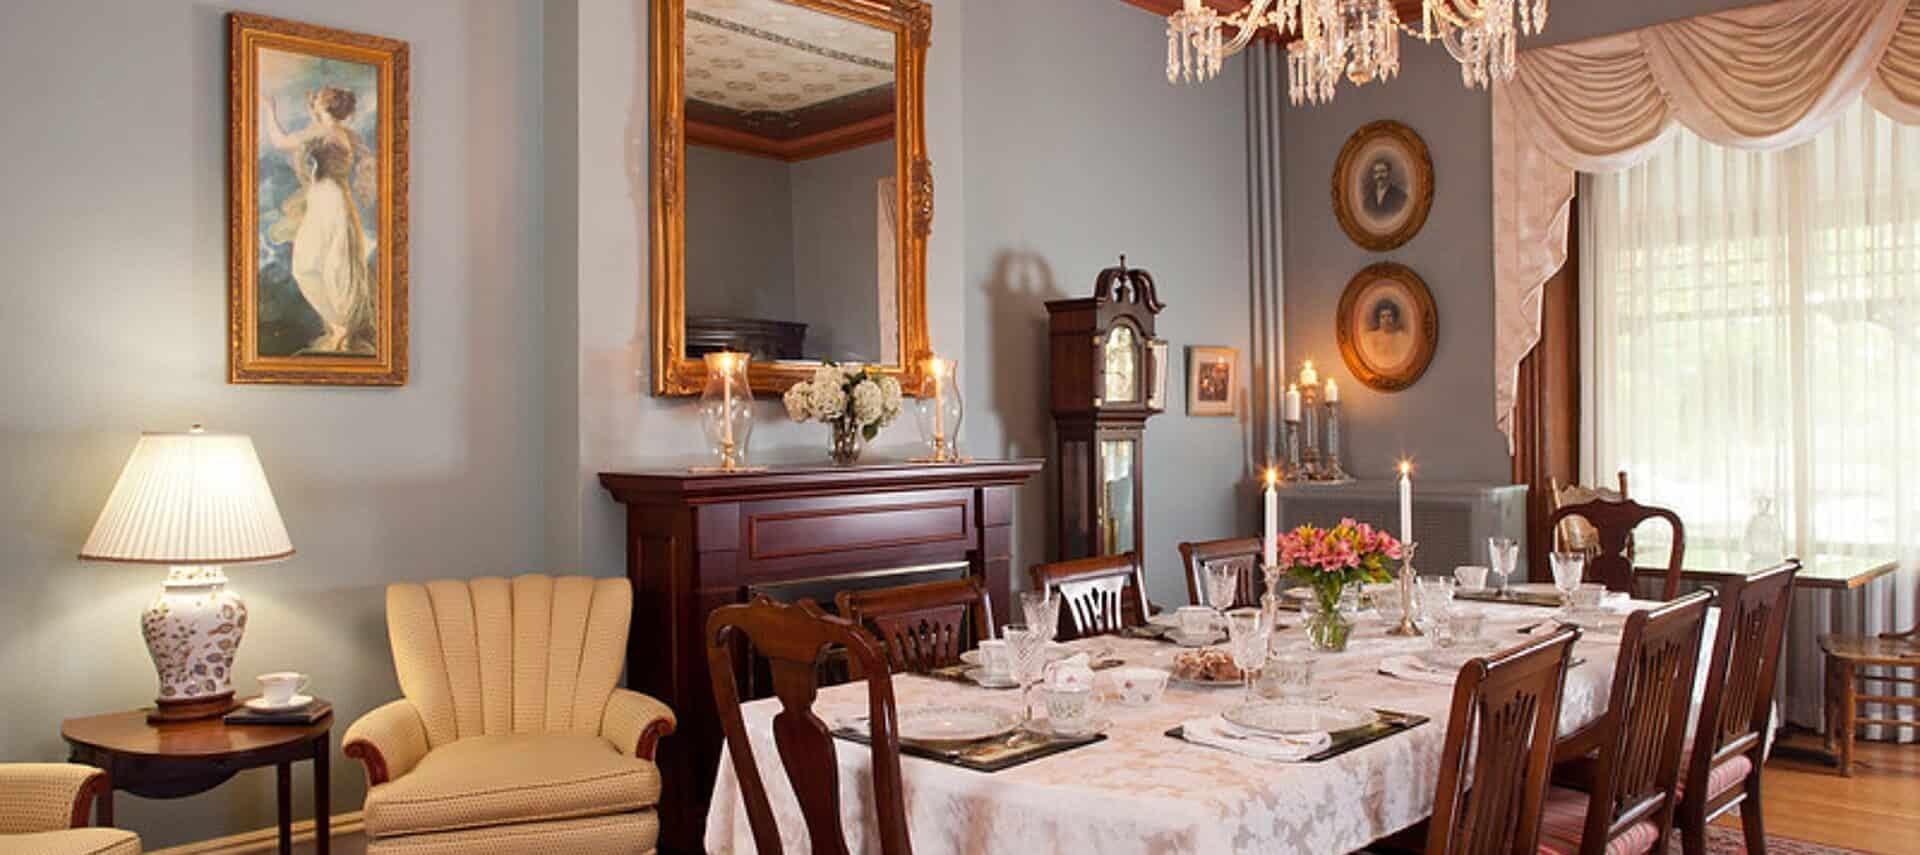 Dining room of a stately home with table set for eight, fireplace with large mirror and two sitting chairs with a table